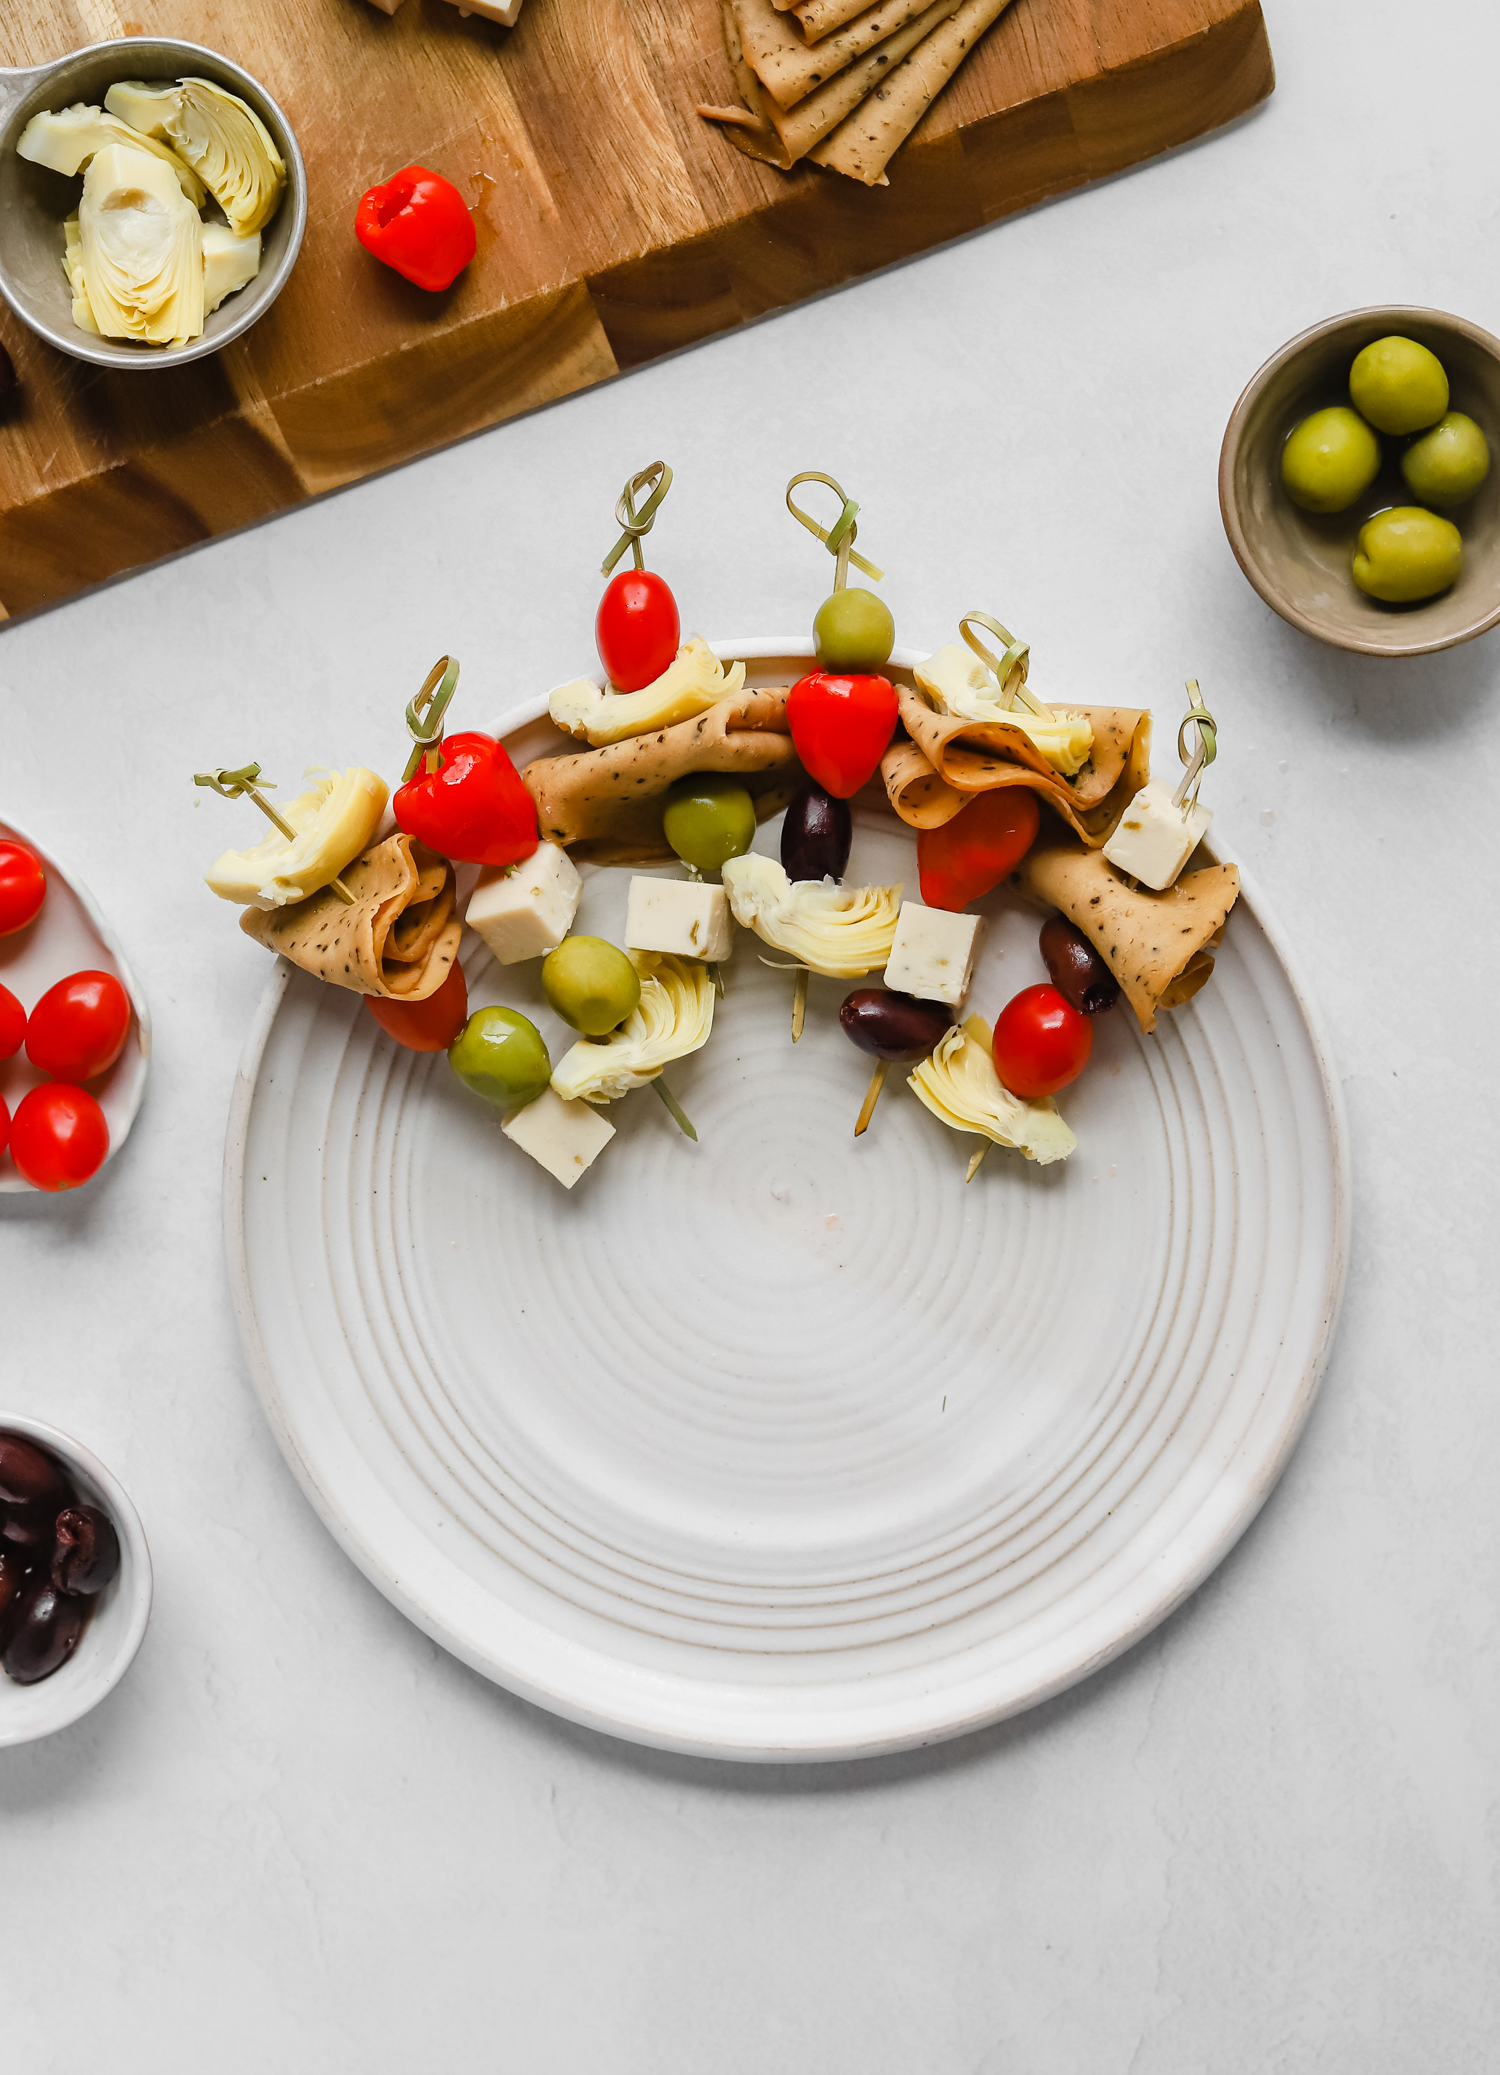 Skewers with olives, tomatoes, artichoke hearts, peppers, vegan deli meat, and vegan cheese on a white plate.